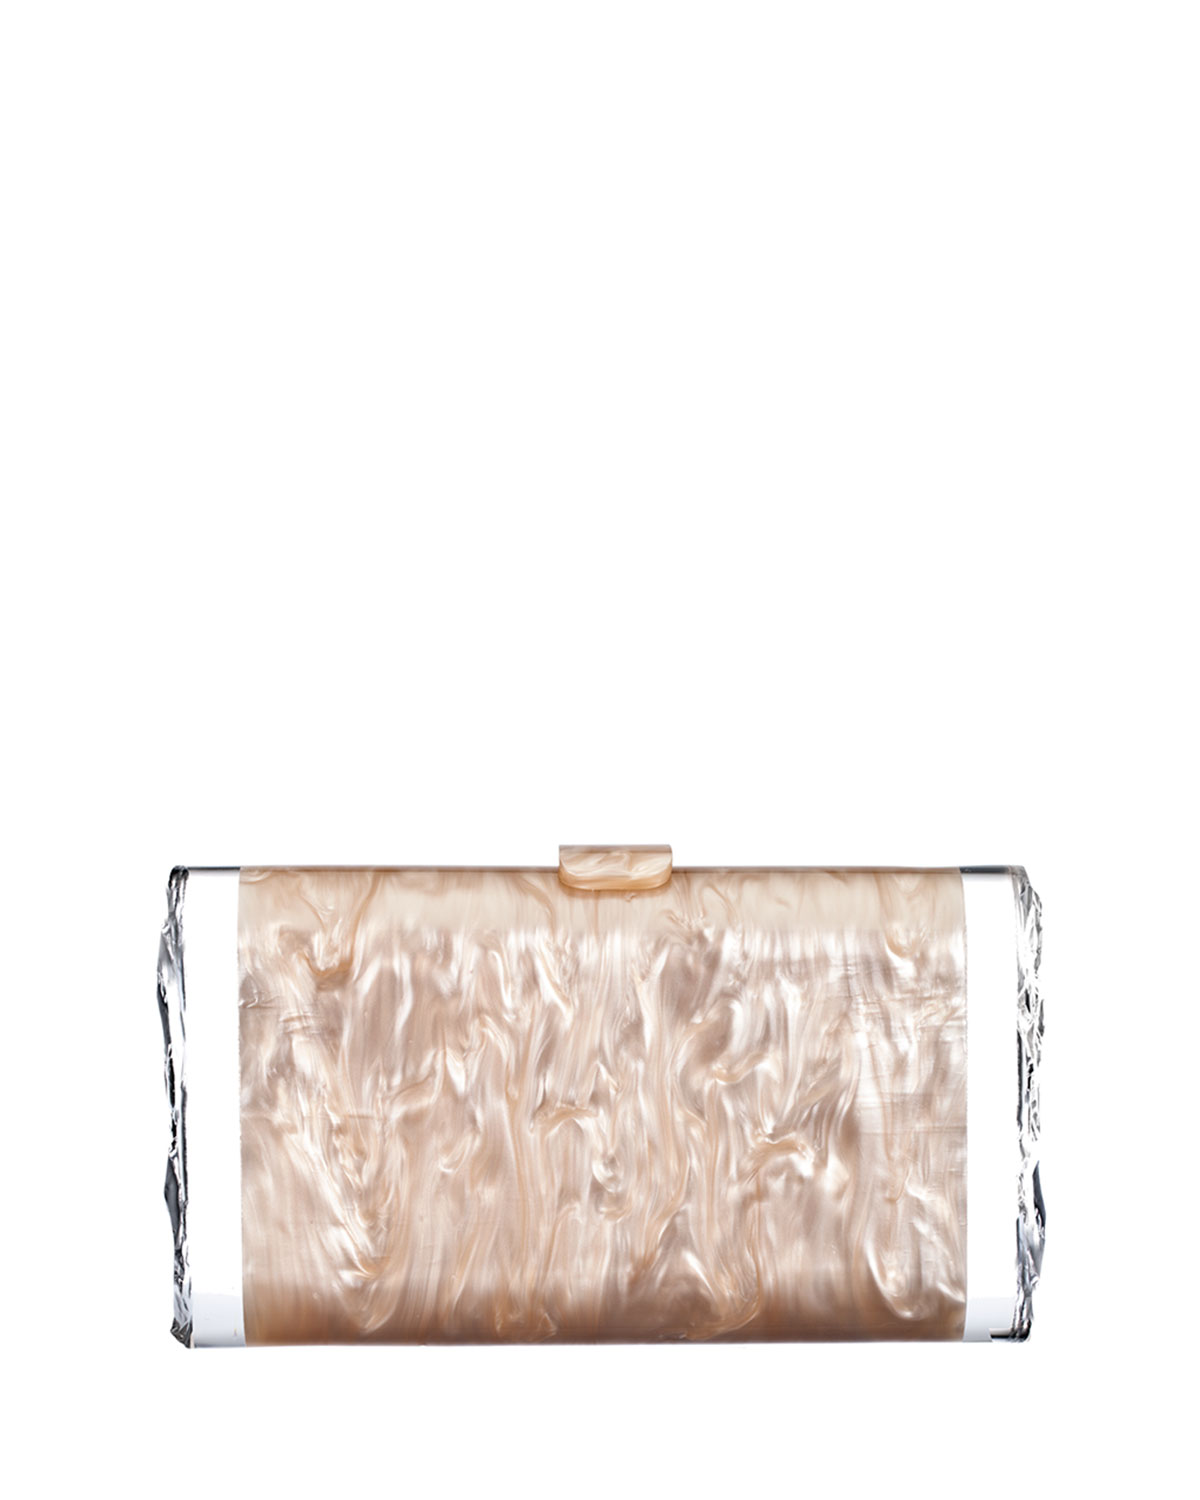 Edie Parker Lara Pearlescent Acrylic Ice Clutch Bag, Taupe (Brown)